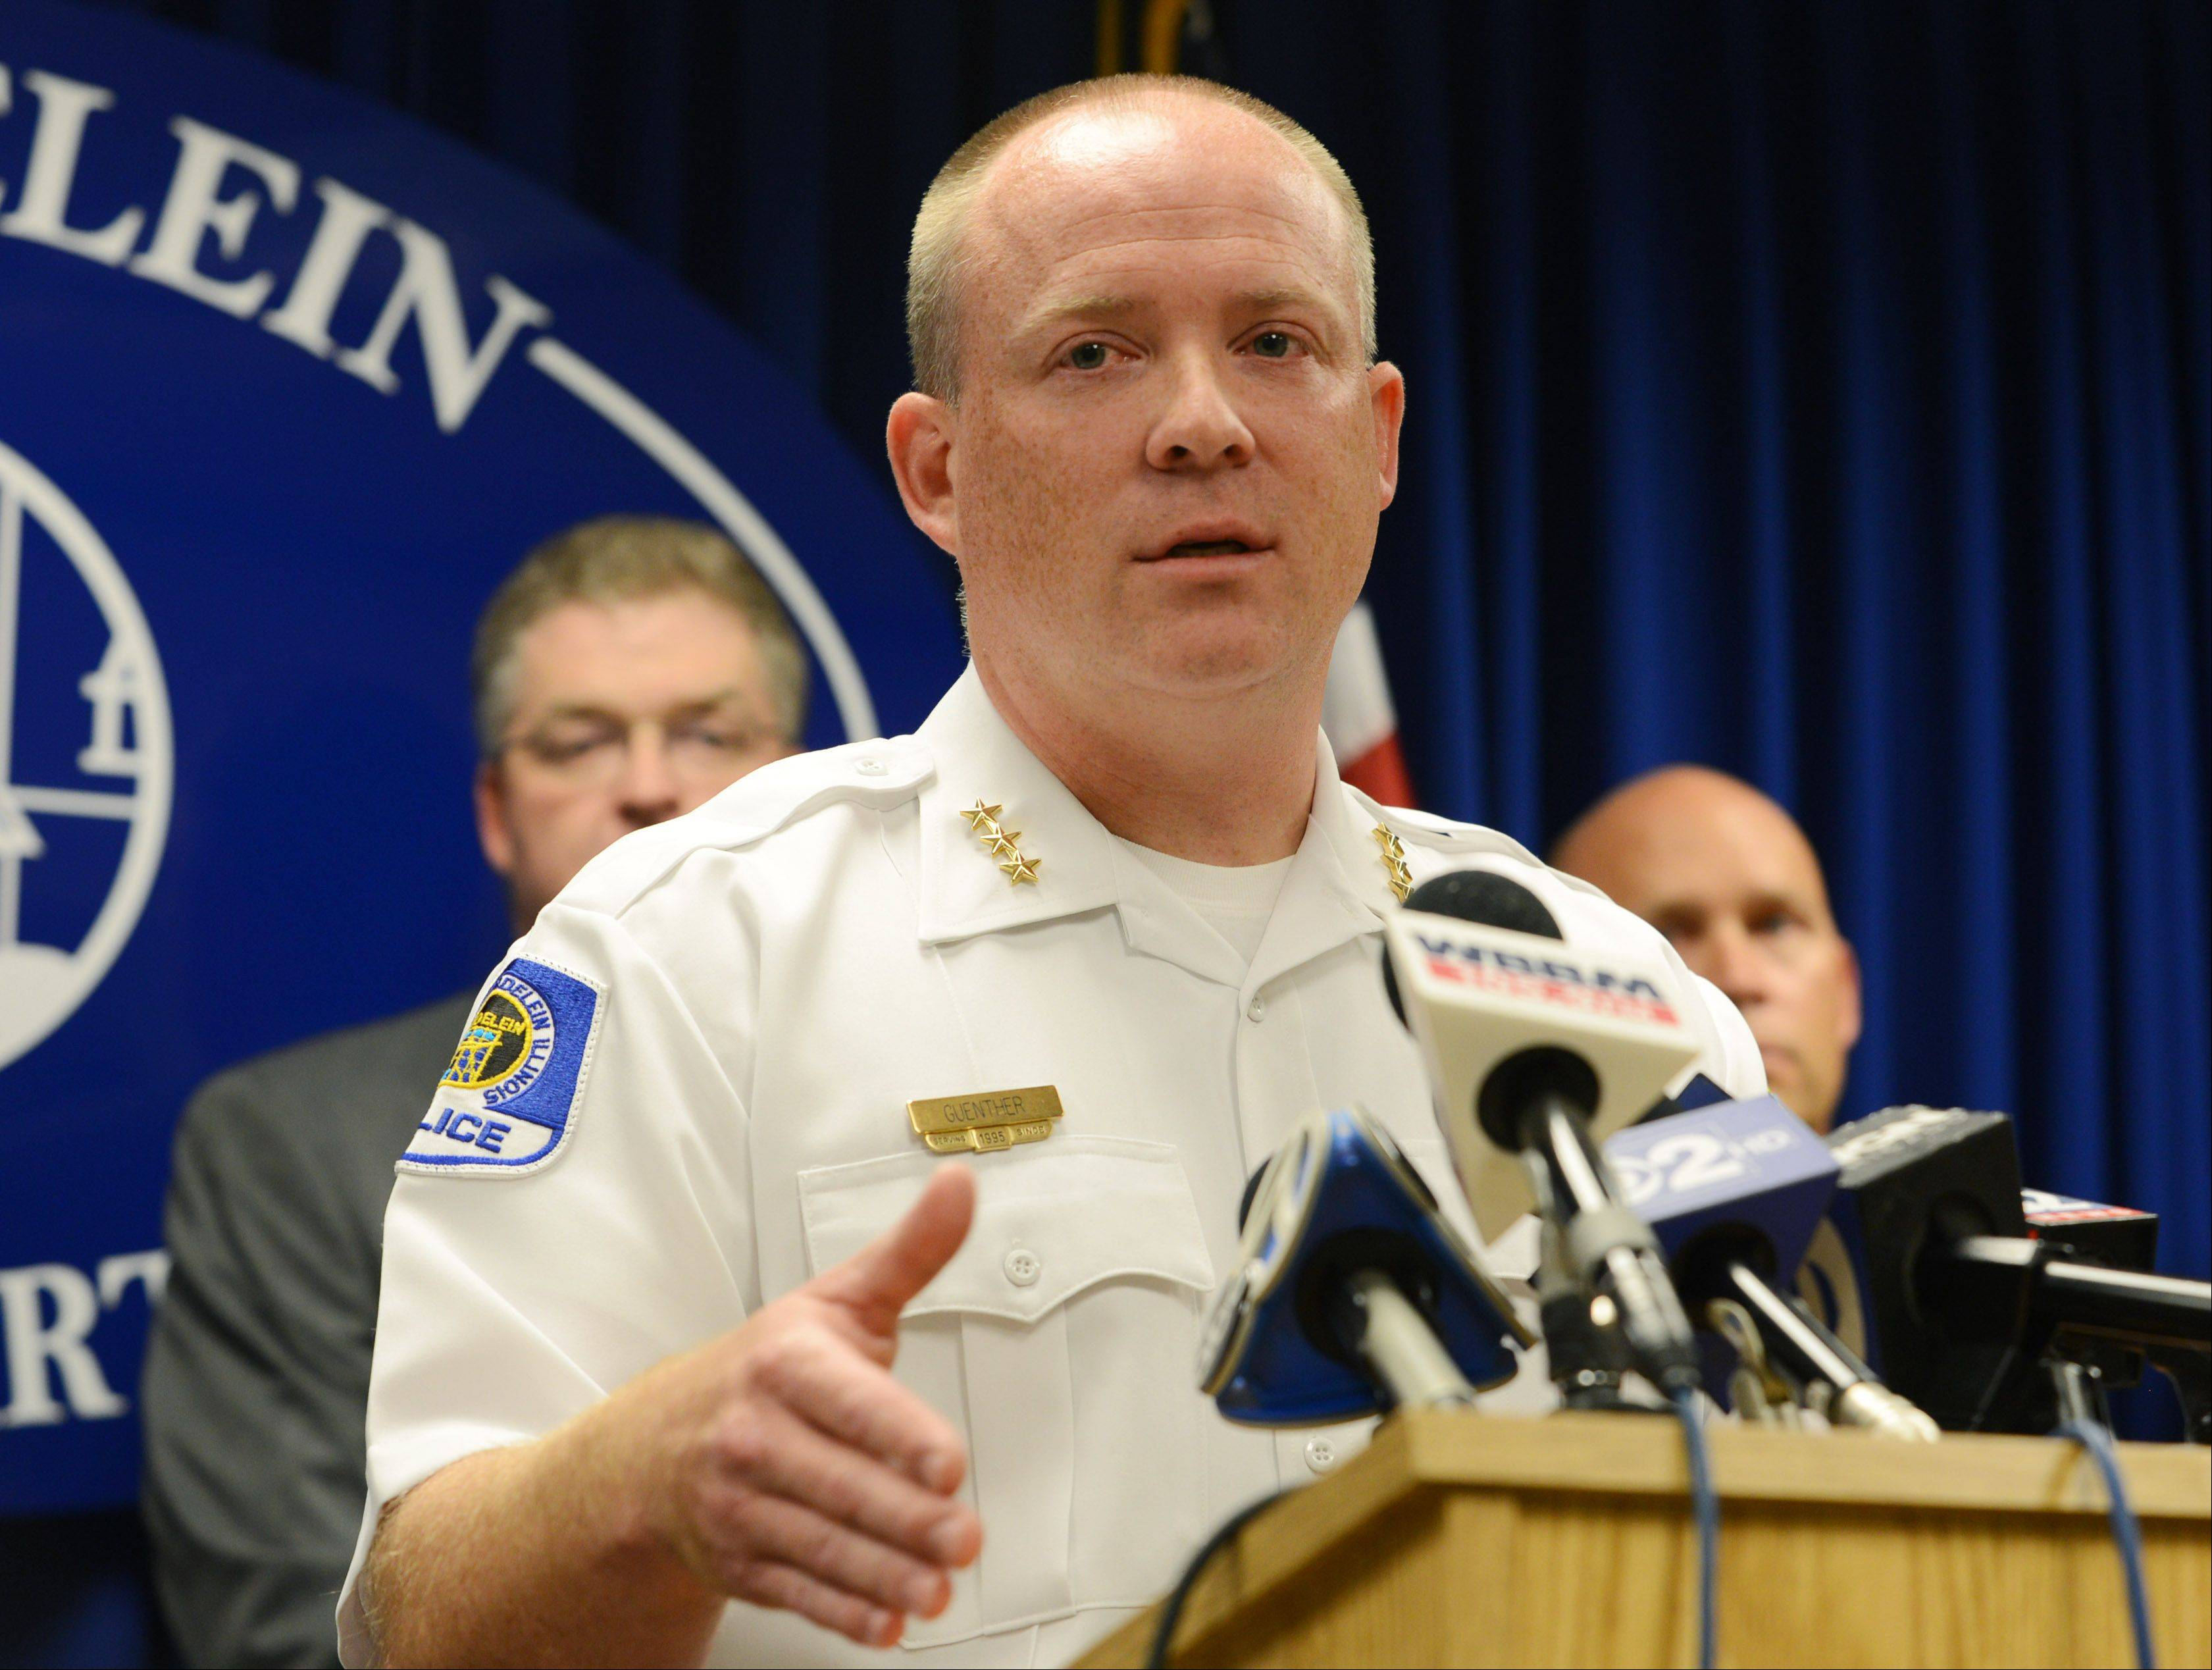 Mundelein Police Chief Eric Guenther speaks at a news conference Thursday about the arrest of a suspect in the child abduction case.